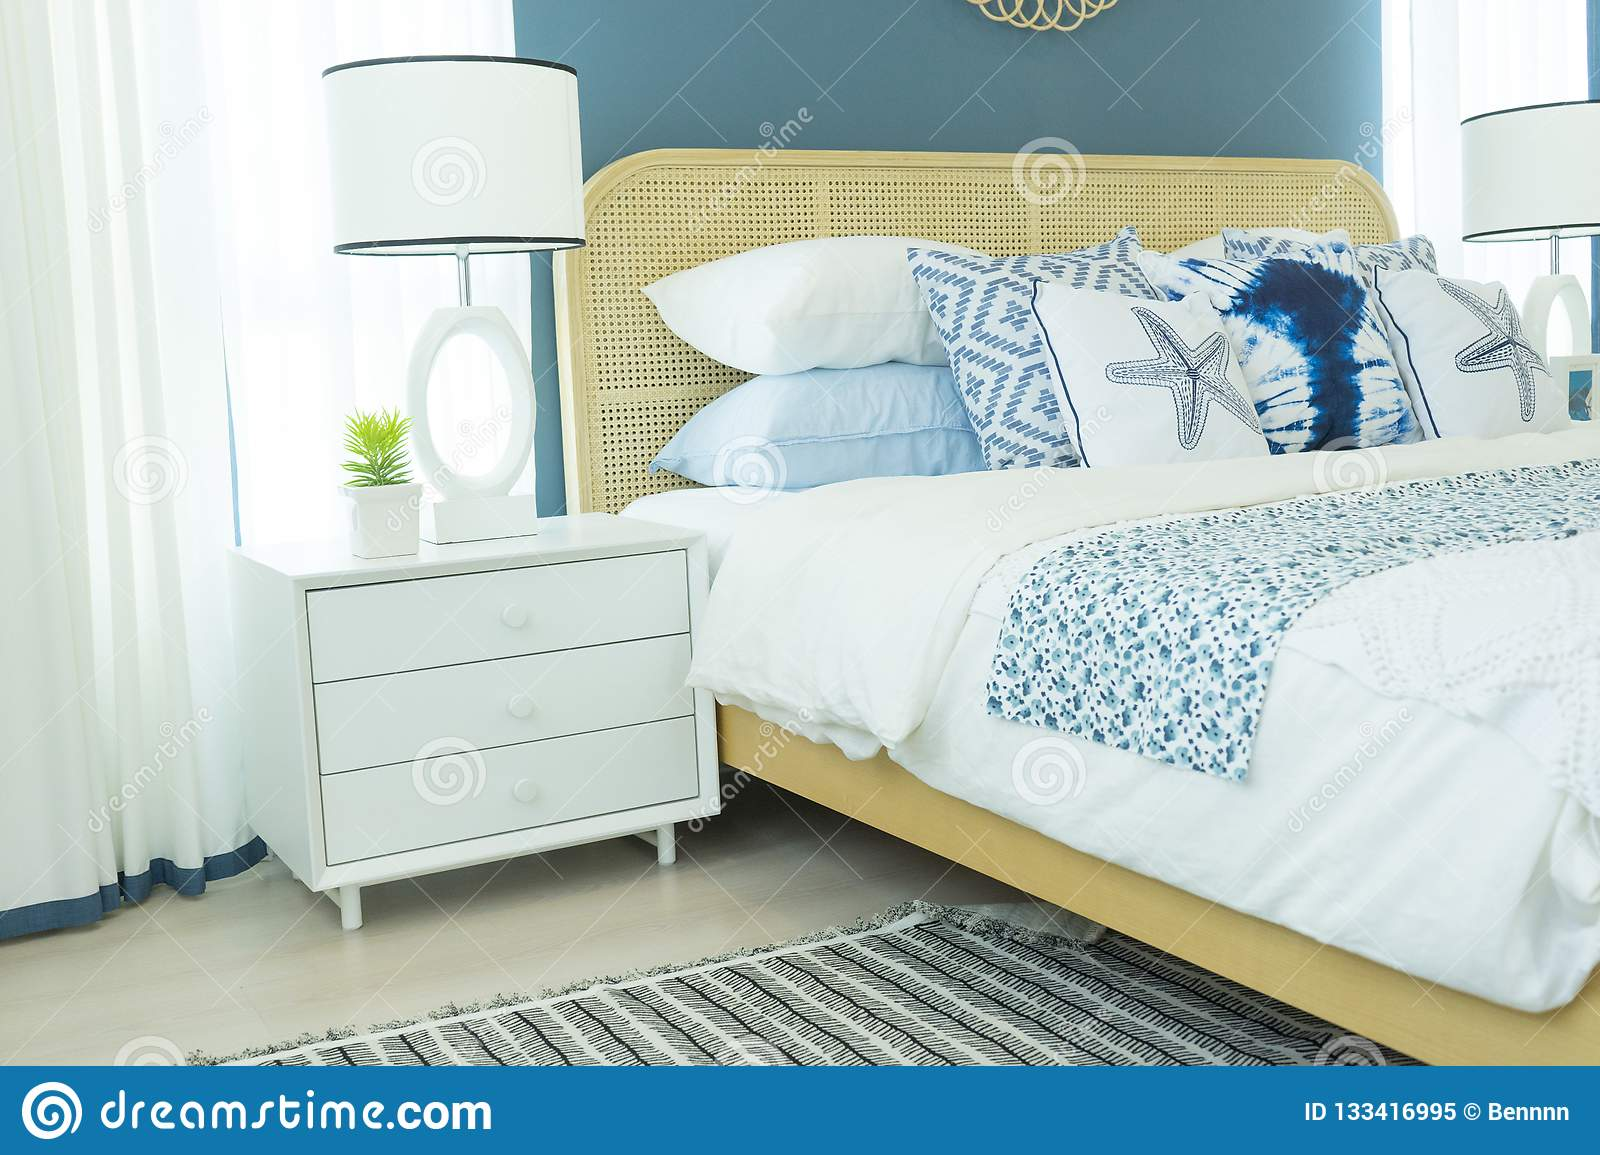 Picture of: Master Bedroom With Blue Wall And White Table Lamp Stock Image Image Of Interior Home 133416995